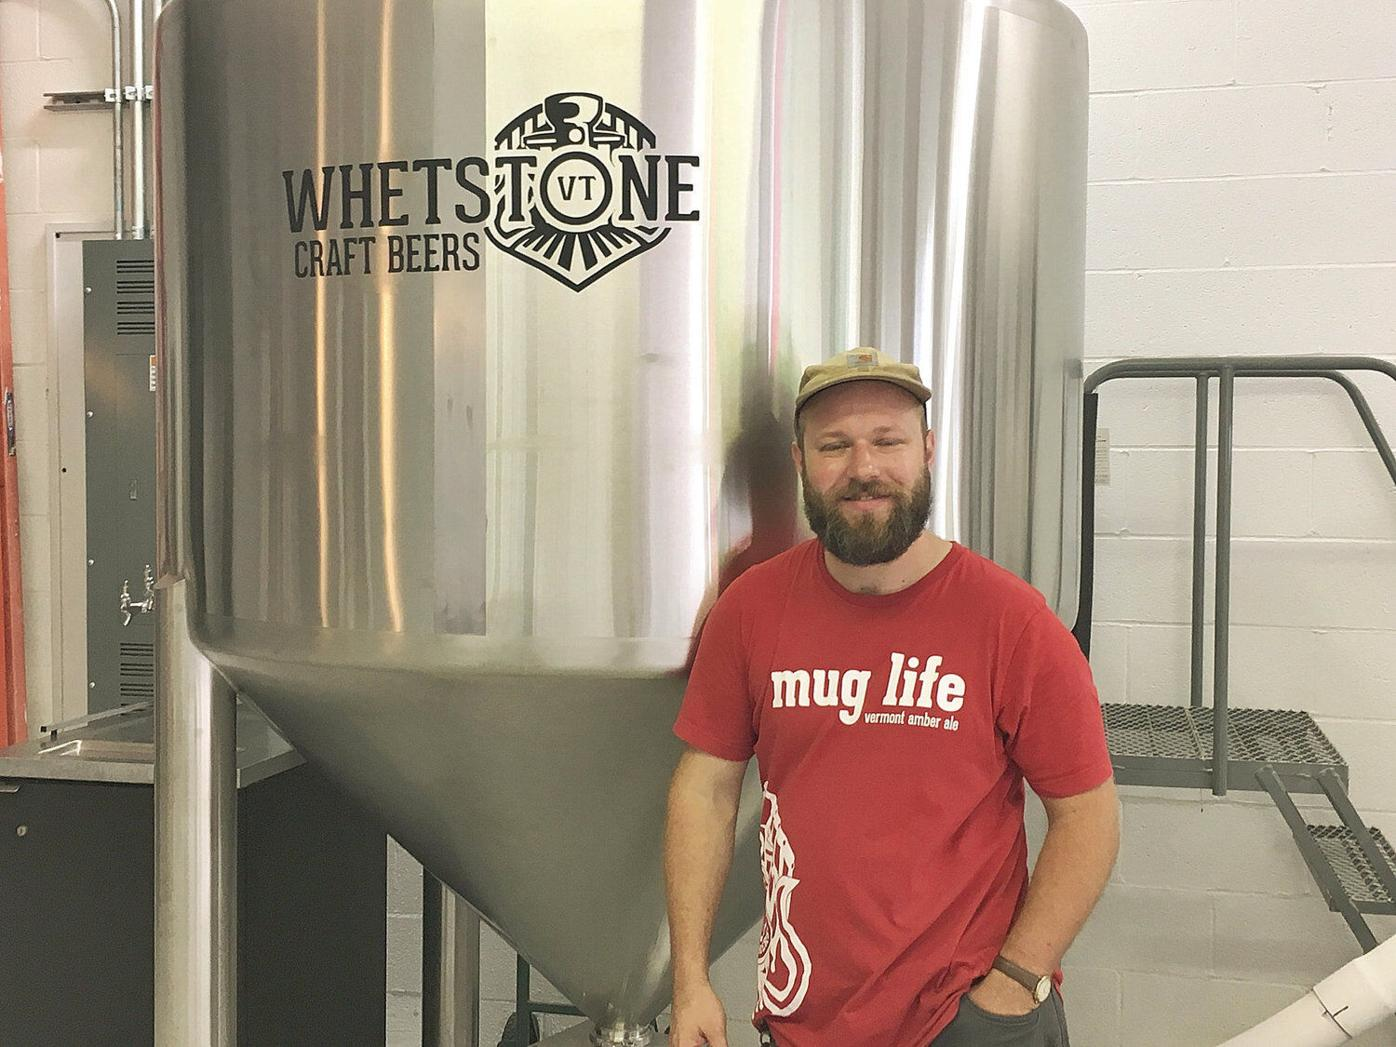 Whetstone Station expansion answers the call for more beer